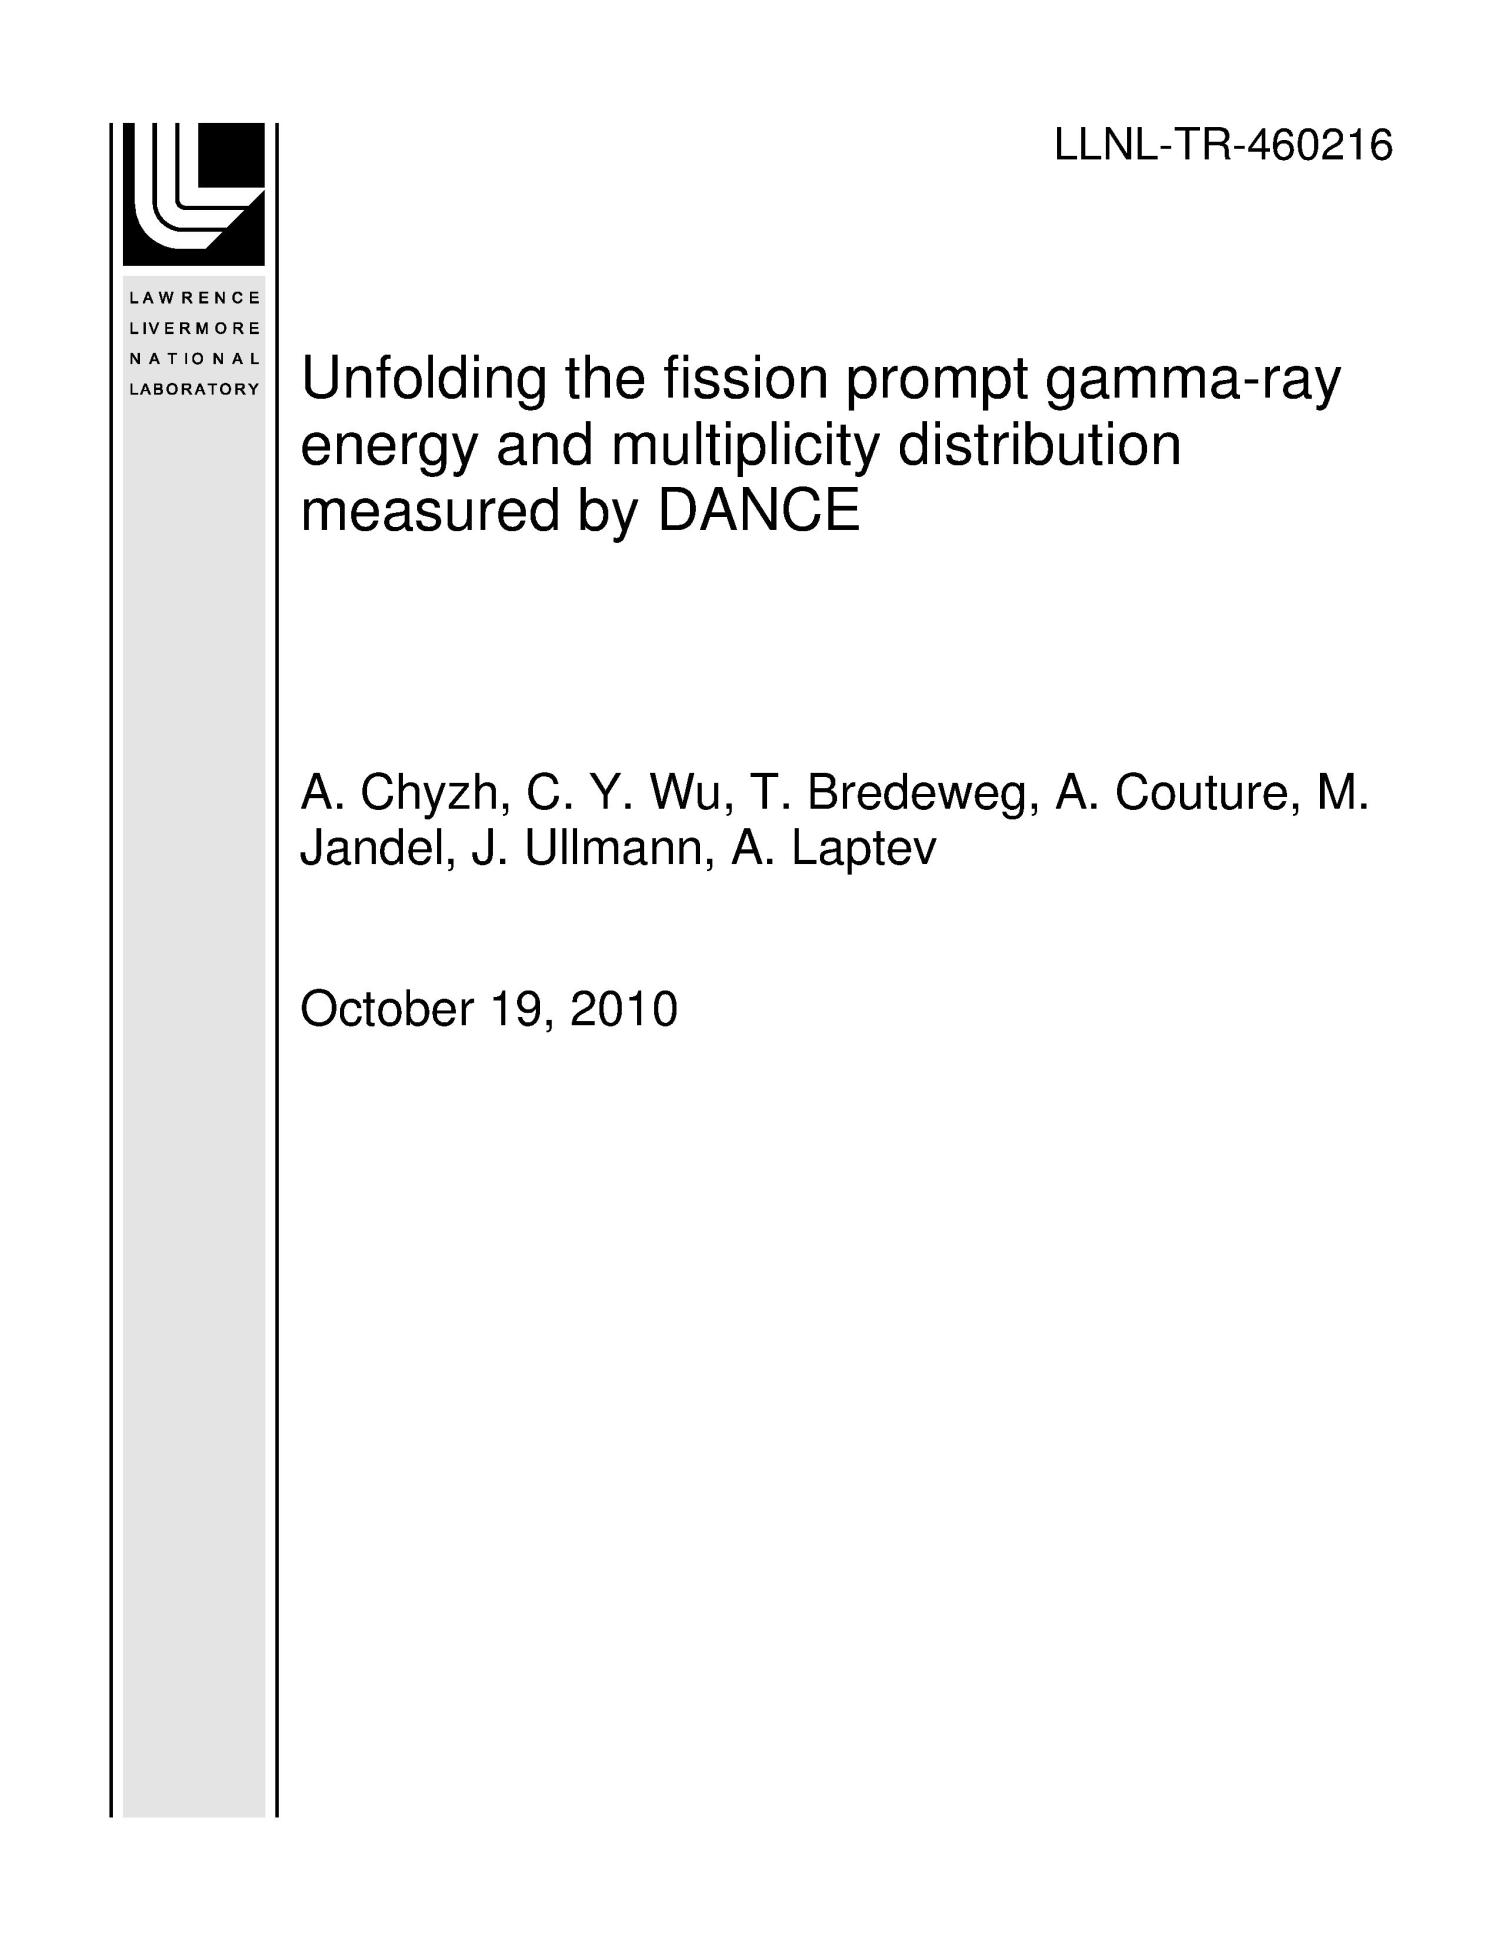 Unfolding the fission prompt gamma-ray energy and multiplicity distribution measured by DANCE                                                                                                      [Sequence #]: 1 of 15